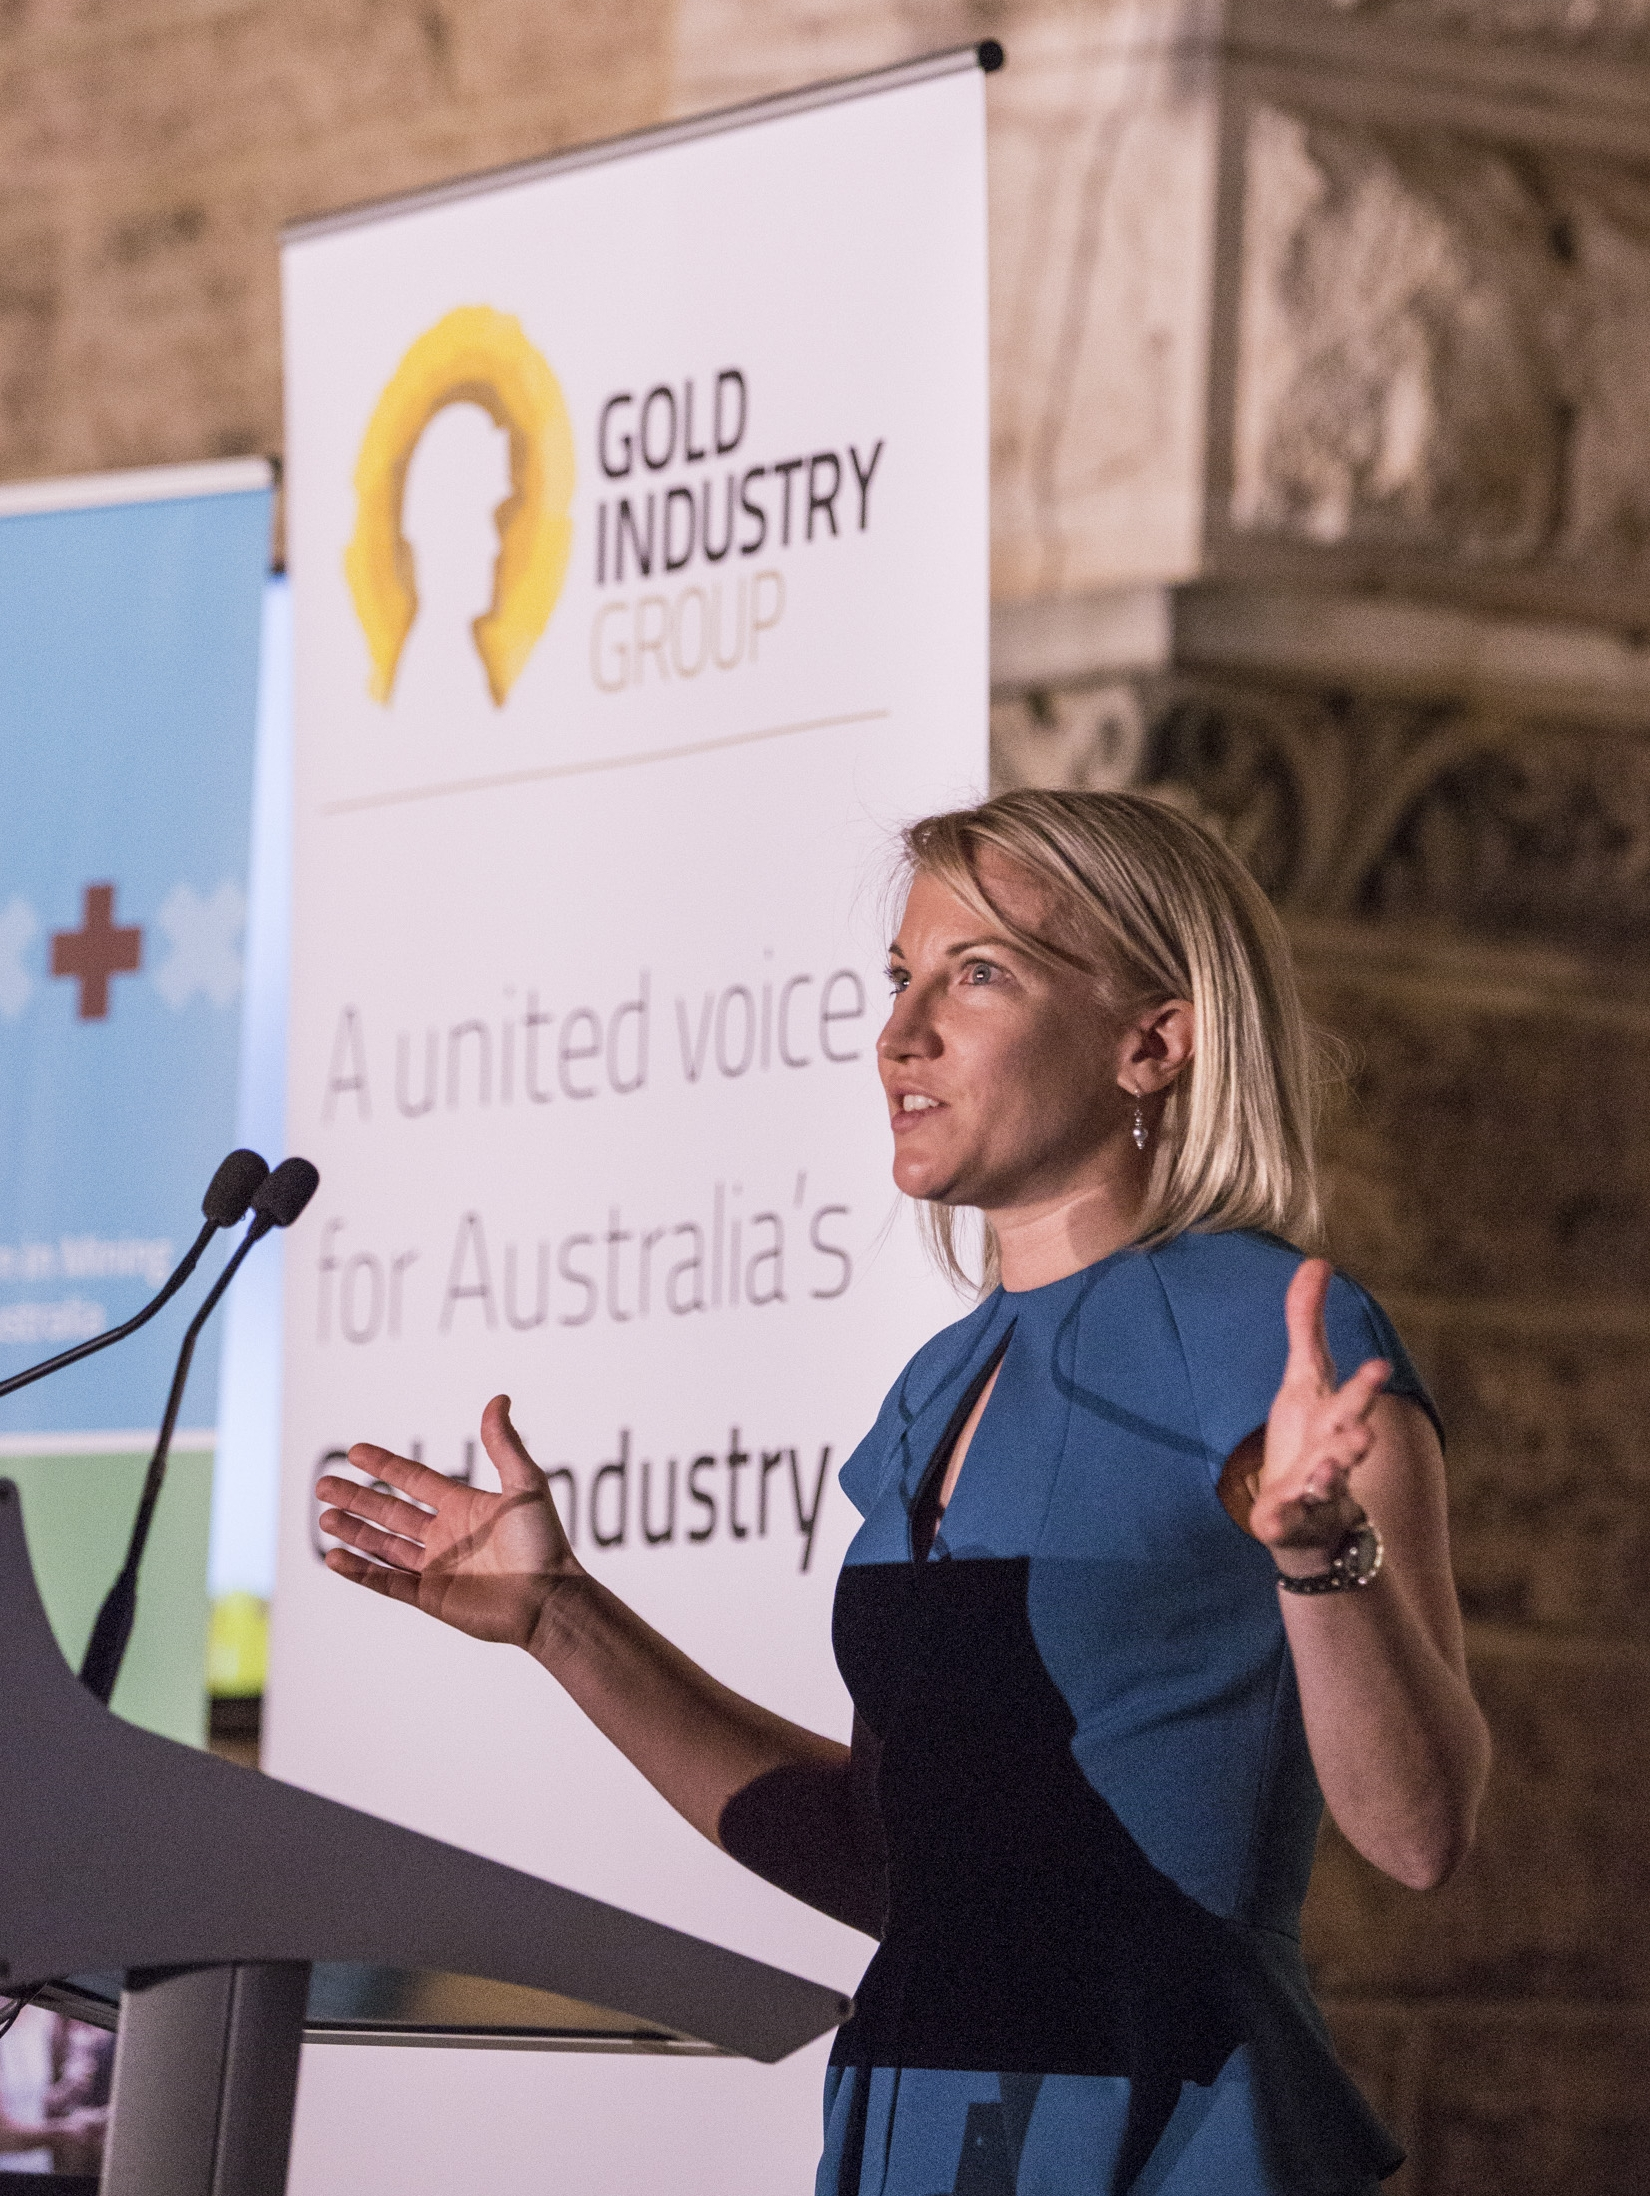 Kelly Carter, Vice Chairperson, Gold Industry Group and Vice President of Legal and Compliance,Gold Fields